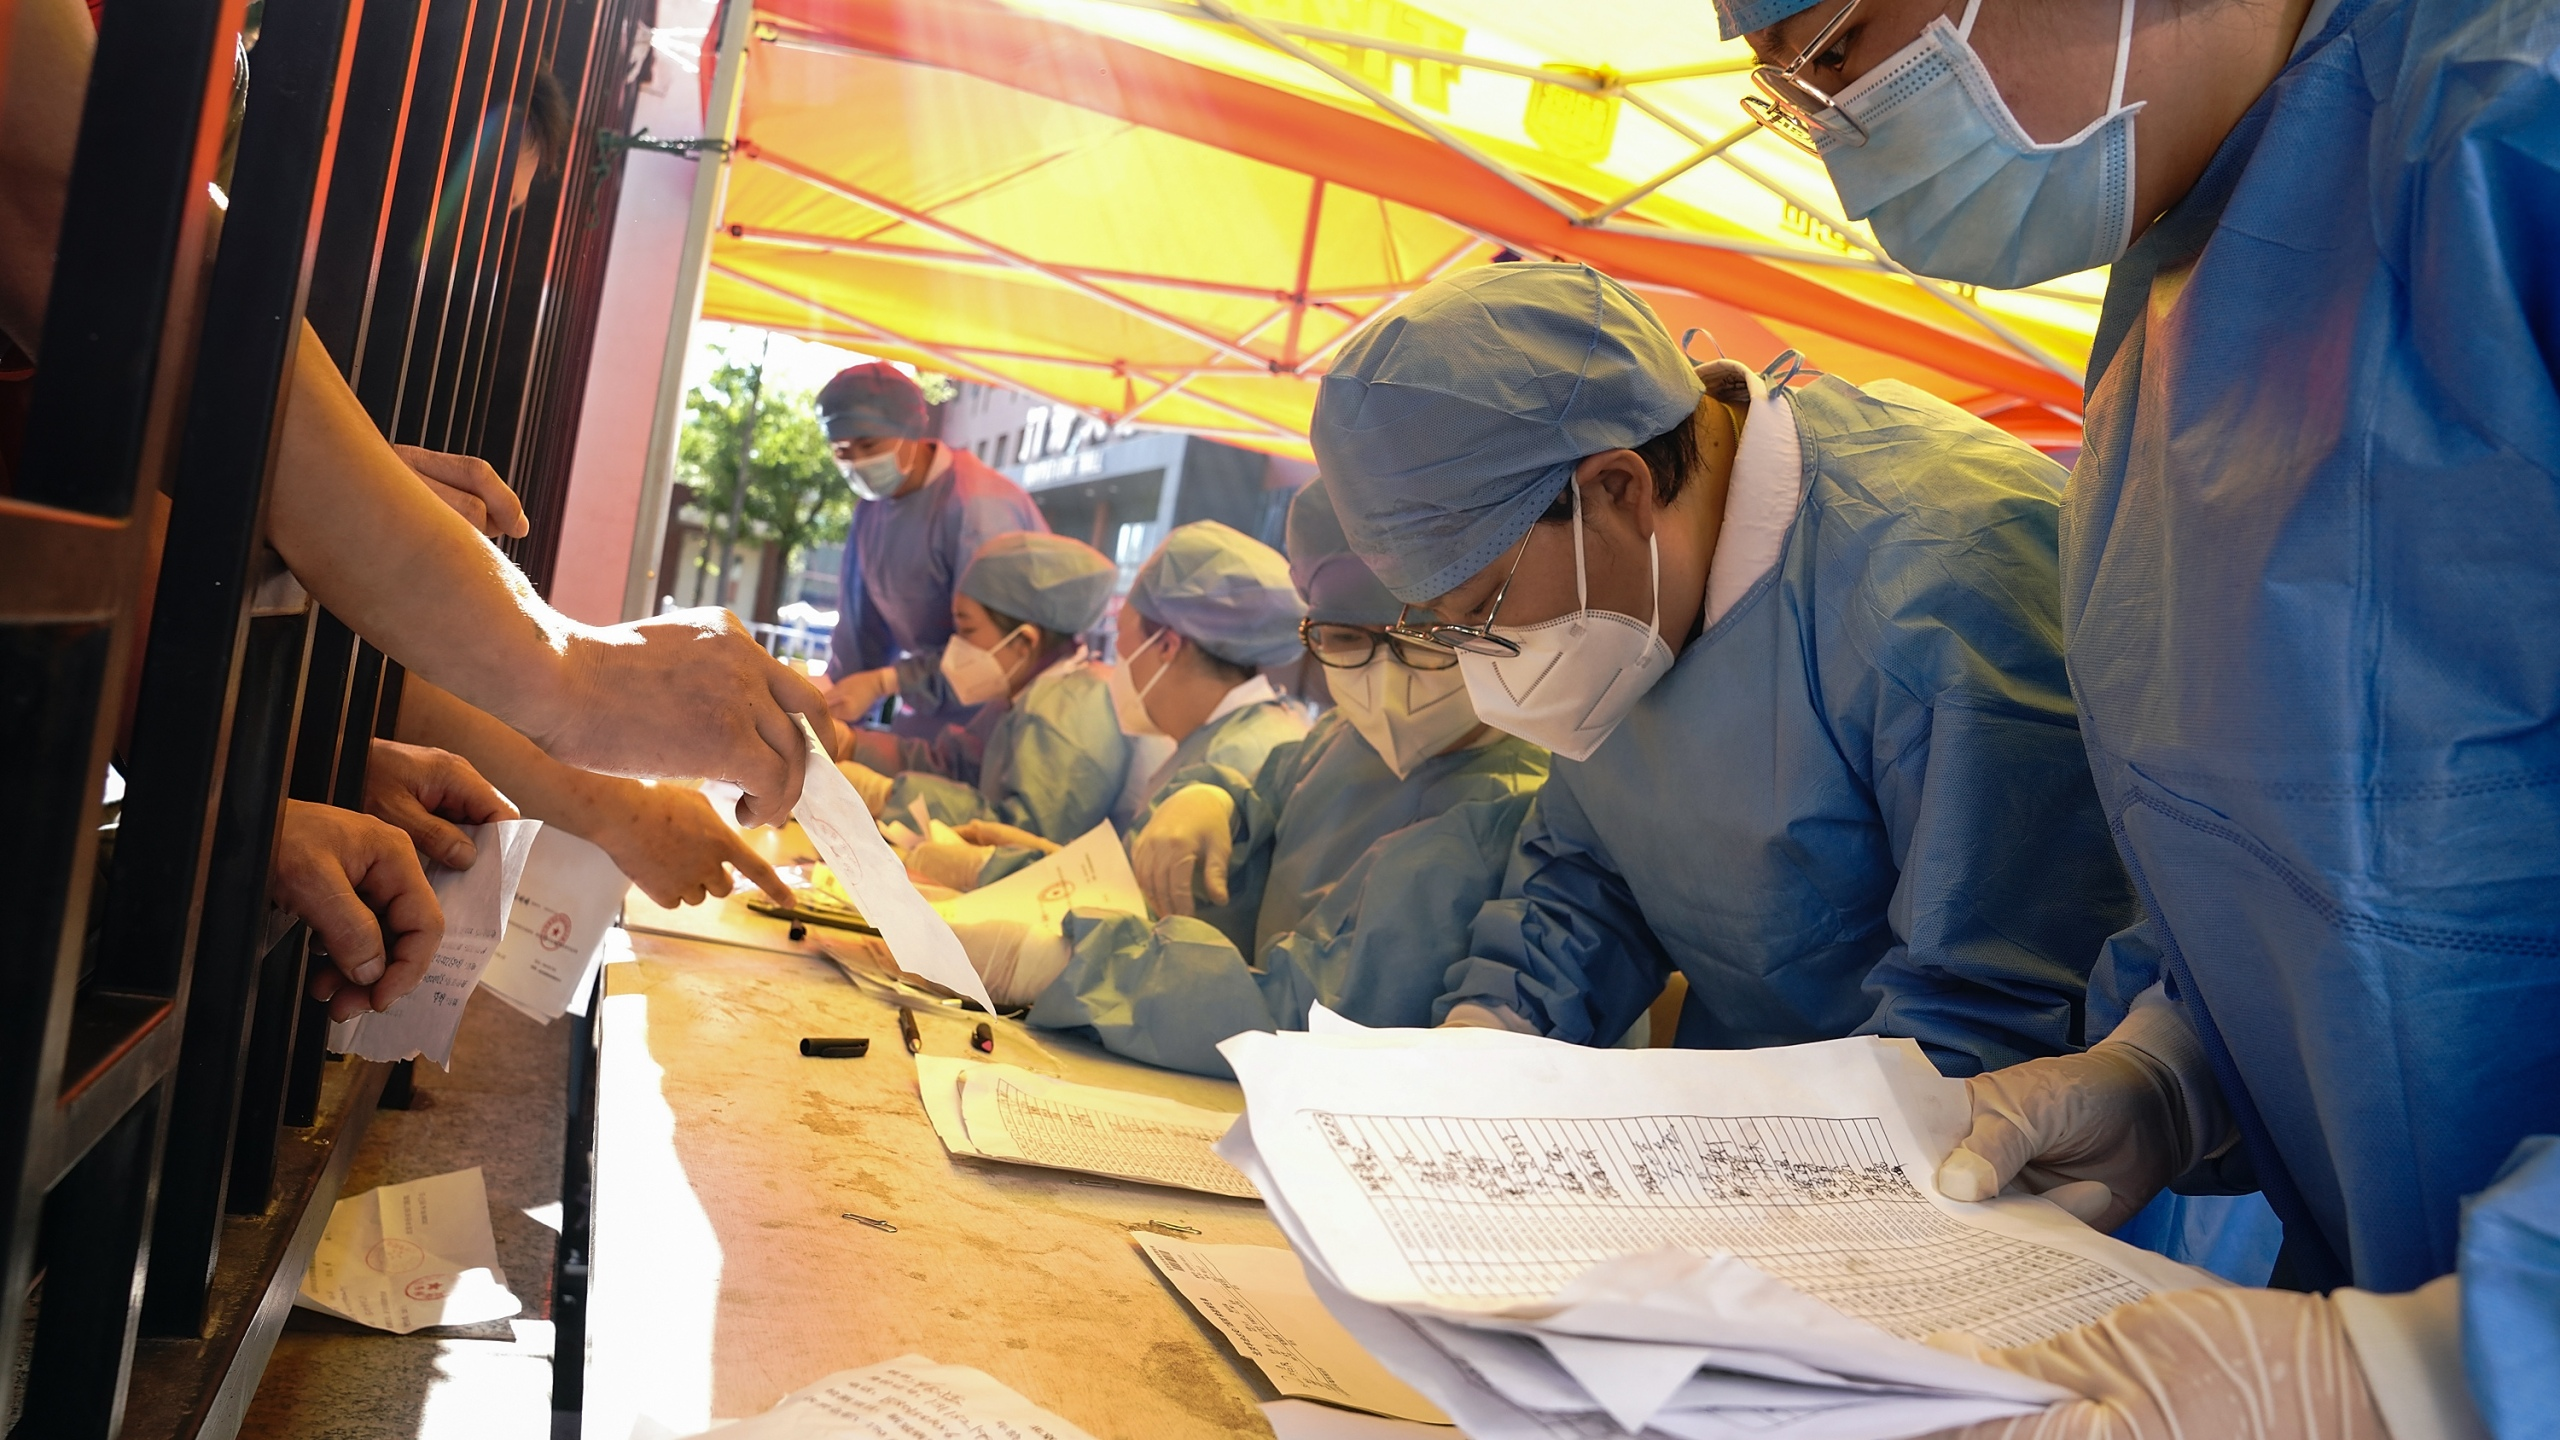 Medical workers wearing protective suits sort nucleic acid test results for the citizens at a hospital on June 14, 2020 in Beijing, China. (Lintao Zhang/Getty Images)